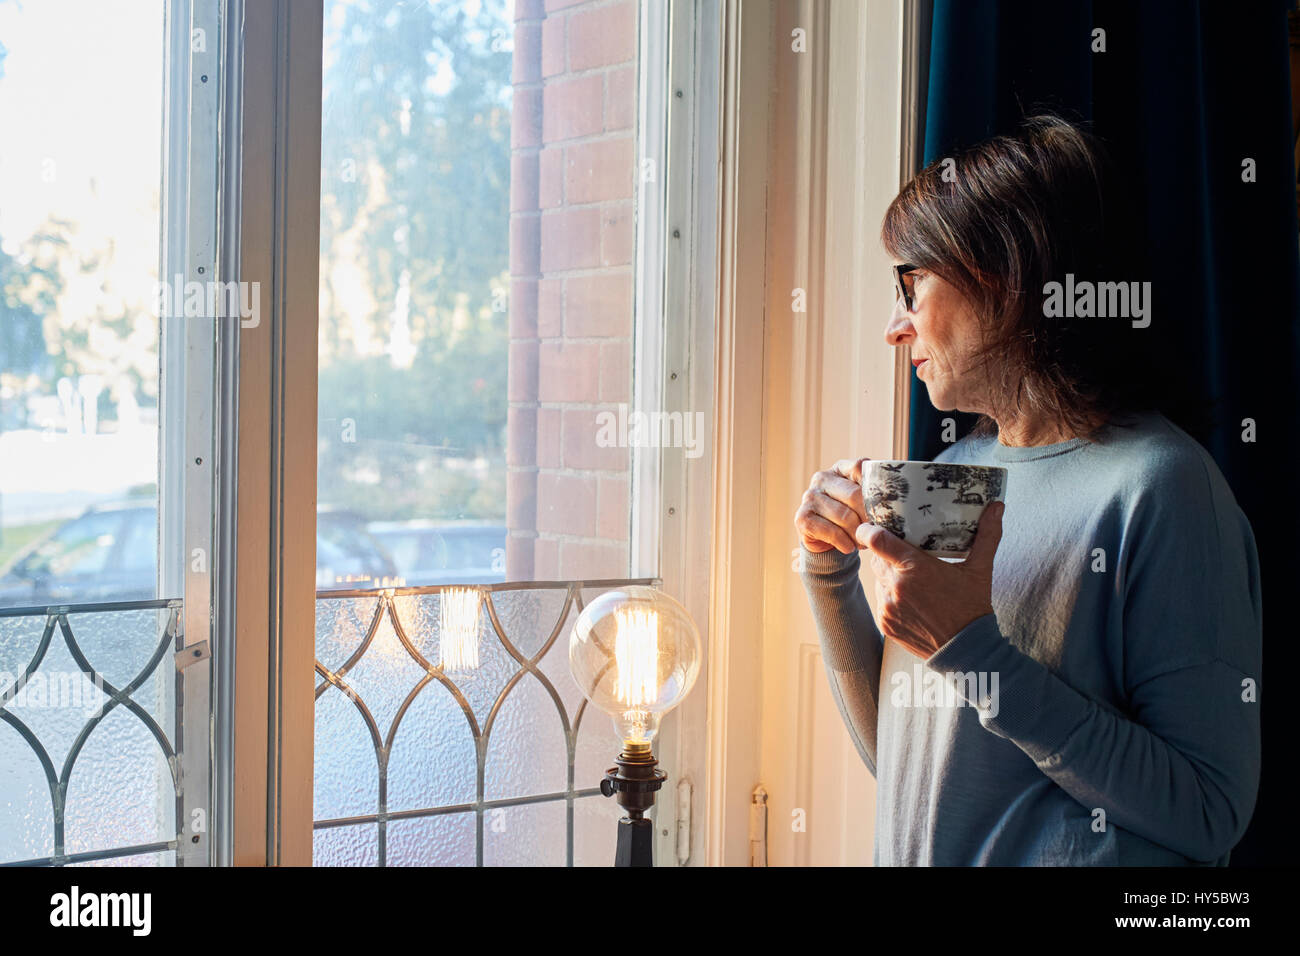 Sweden, Woman looking through window, holding coffee cup - Stock Image